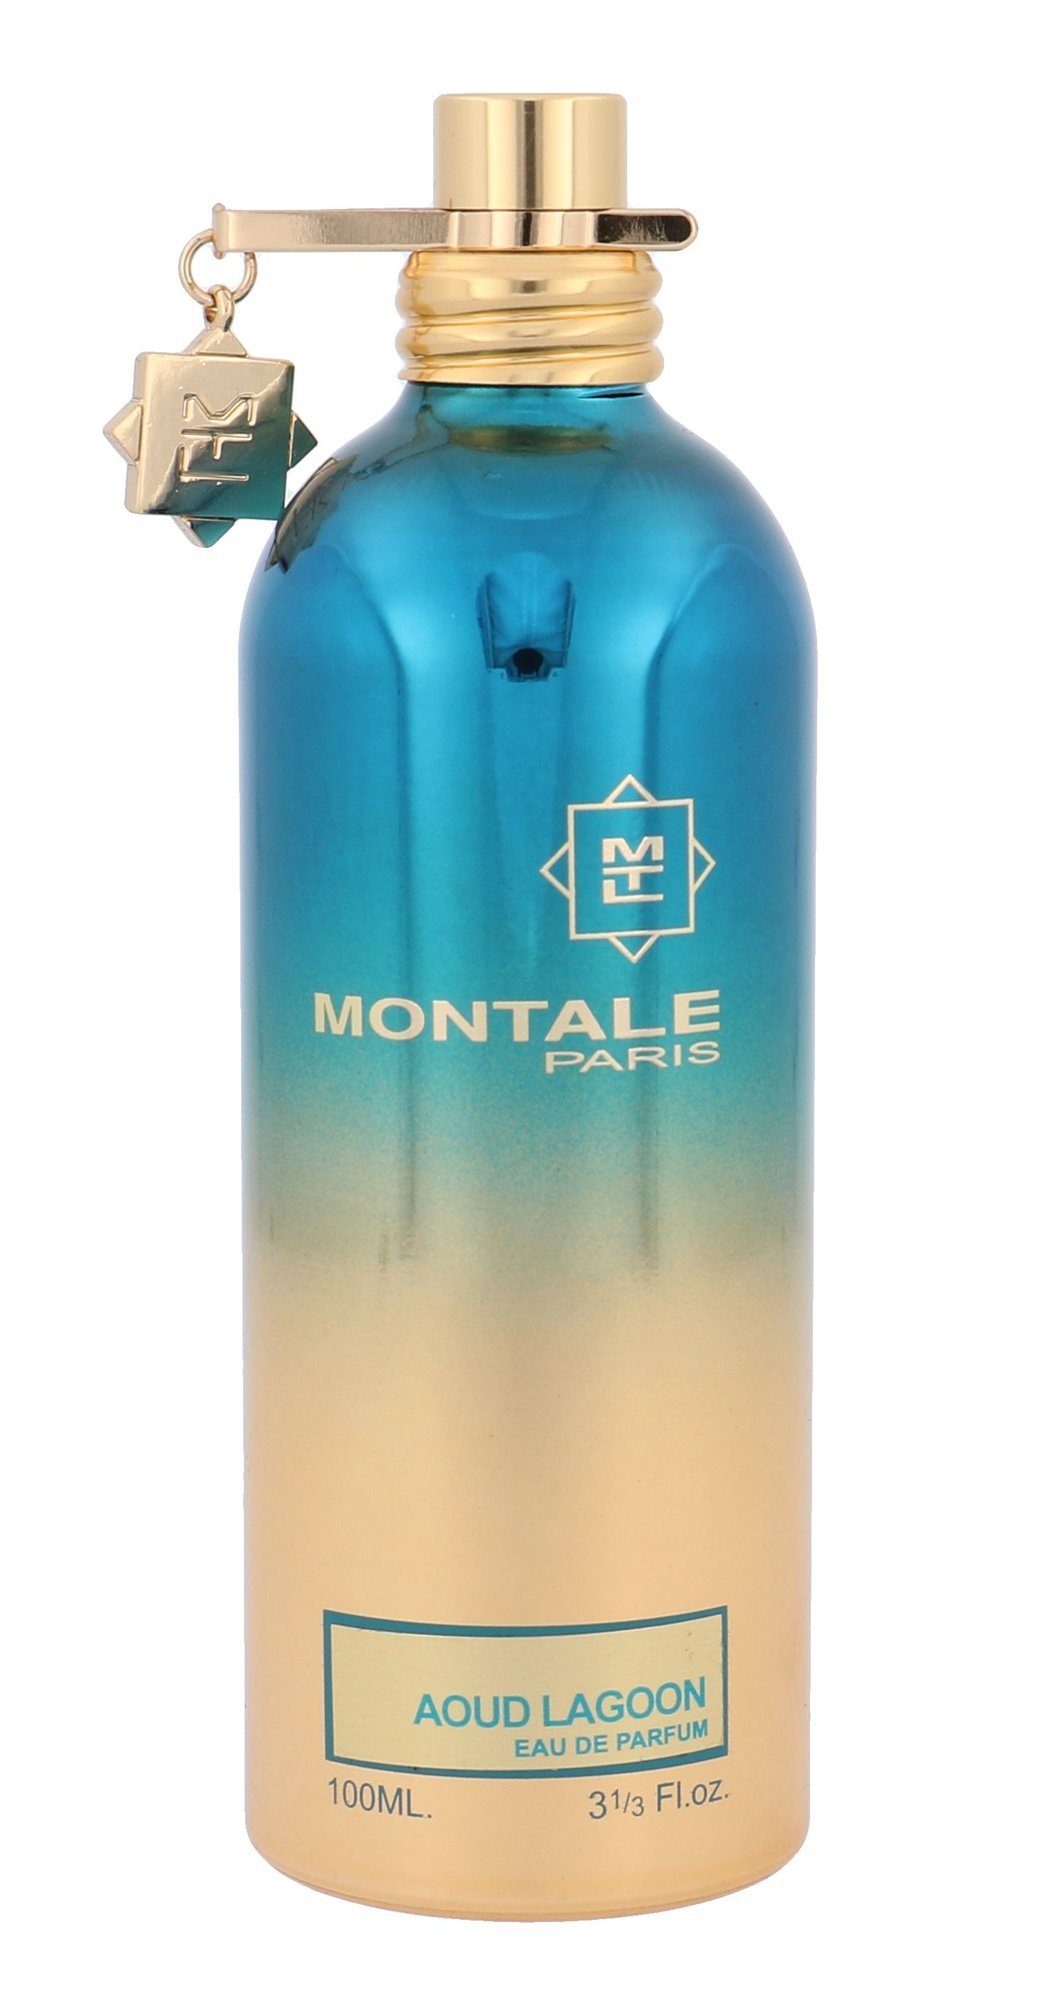 Montale Paris Aoud Lagoon EDP 100ml